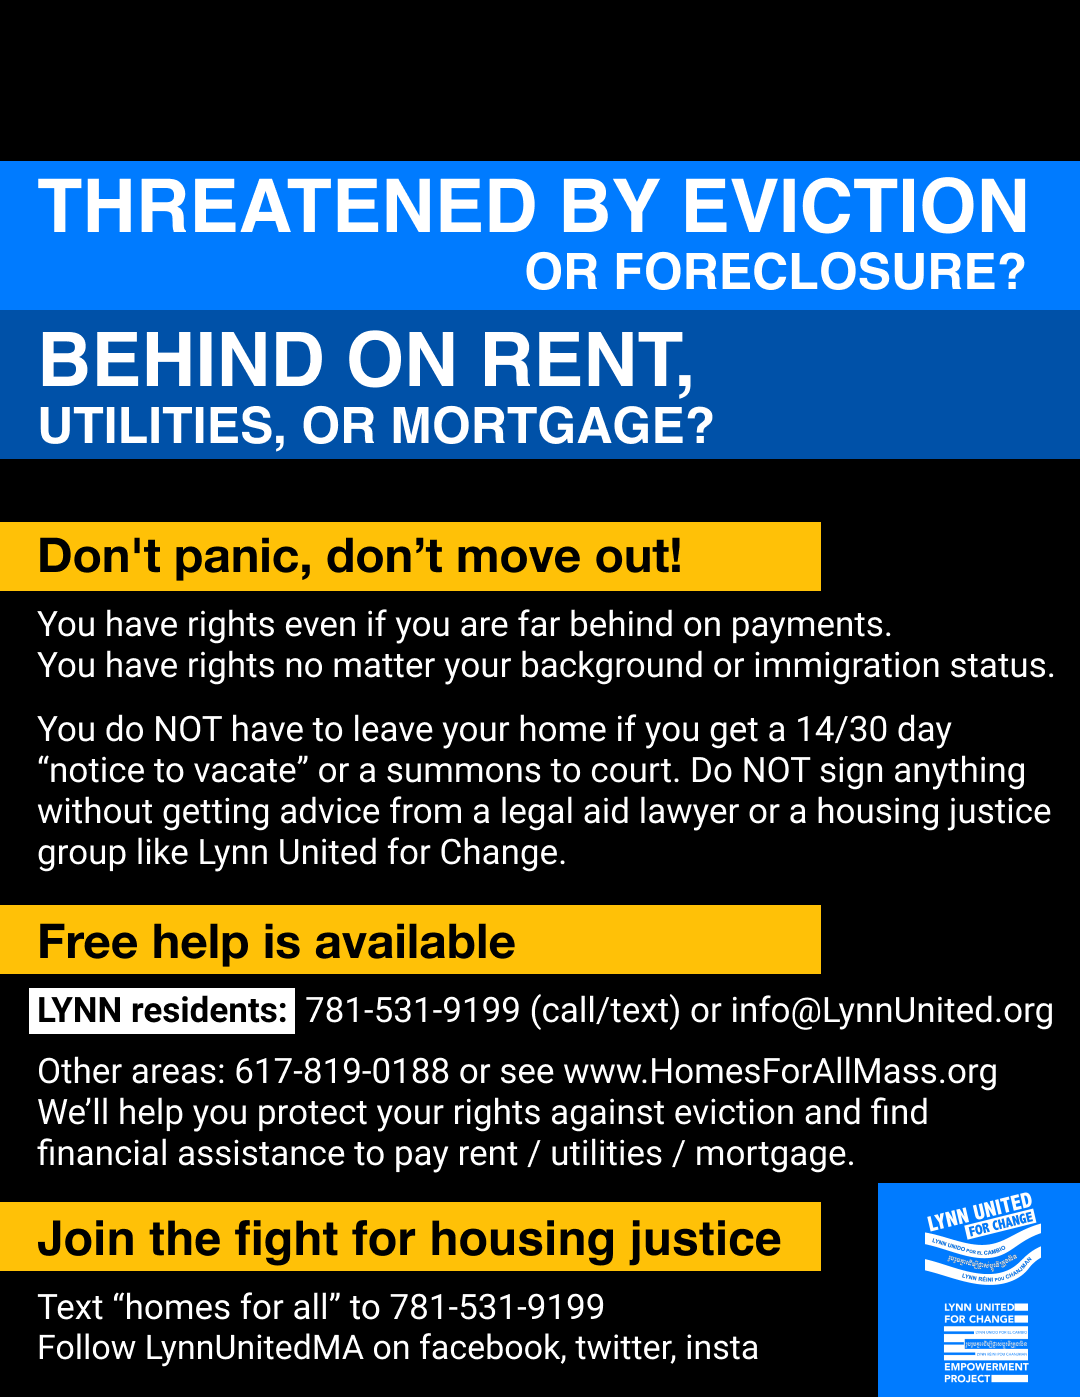 Flyer with information about what to do if you get an eviction notice or fall behind on rent